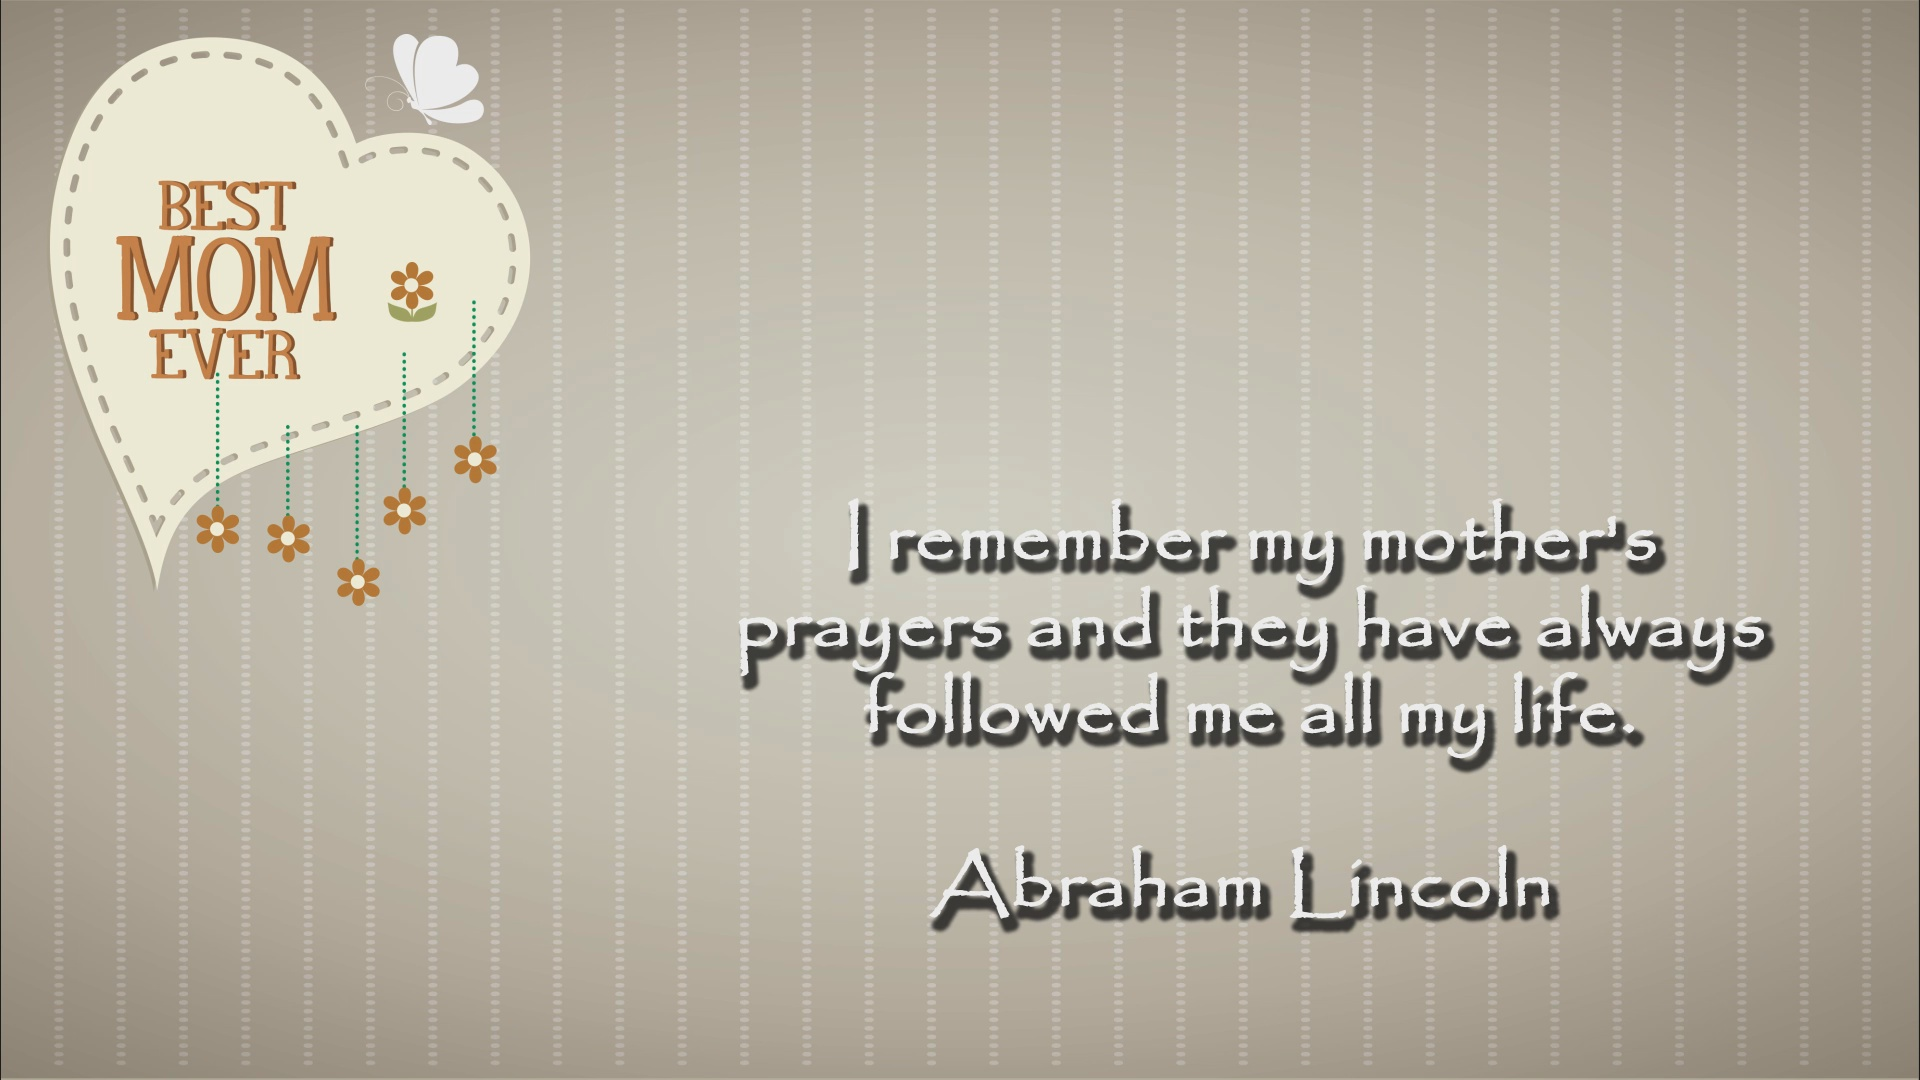 Abraham Lincoln Quote 2 Christian Animated Still A professional animated intro that's stops on a still image without continuous movements distraction